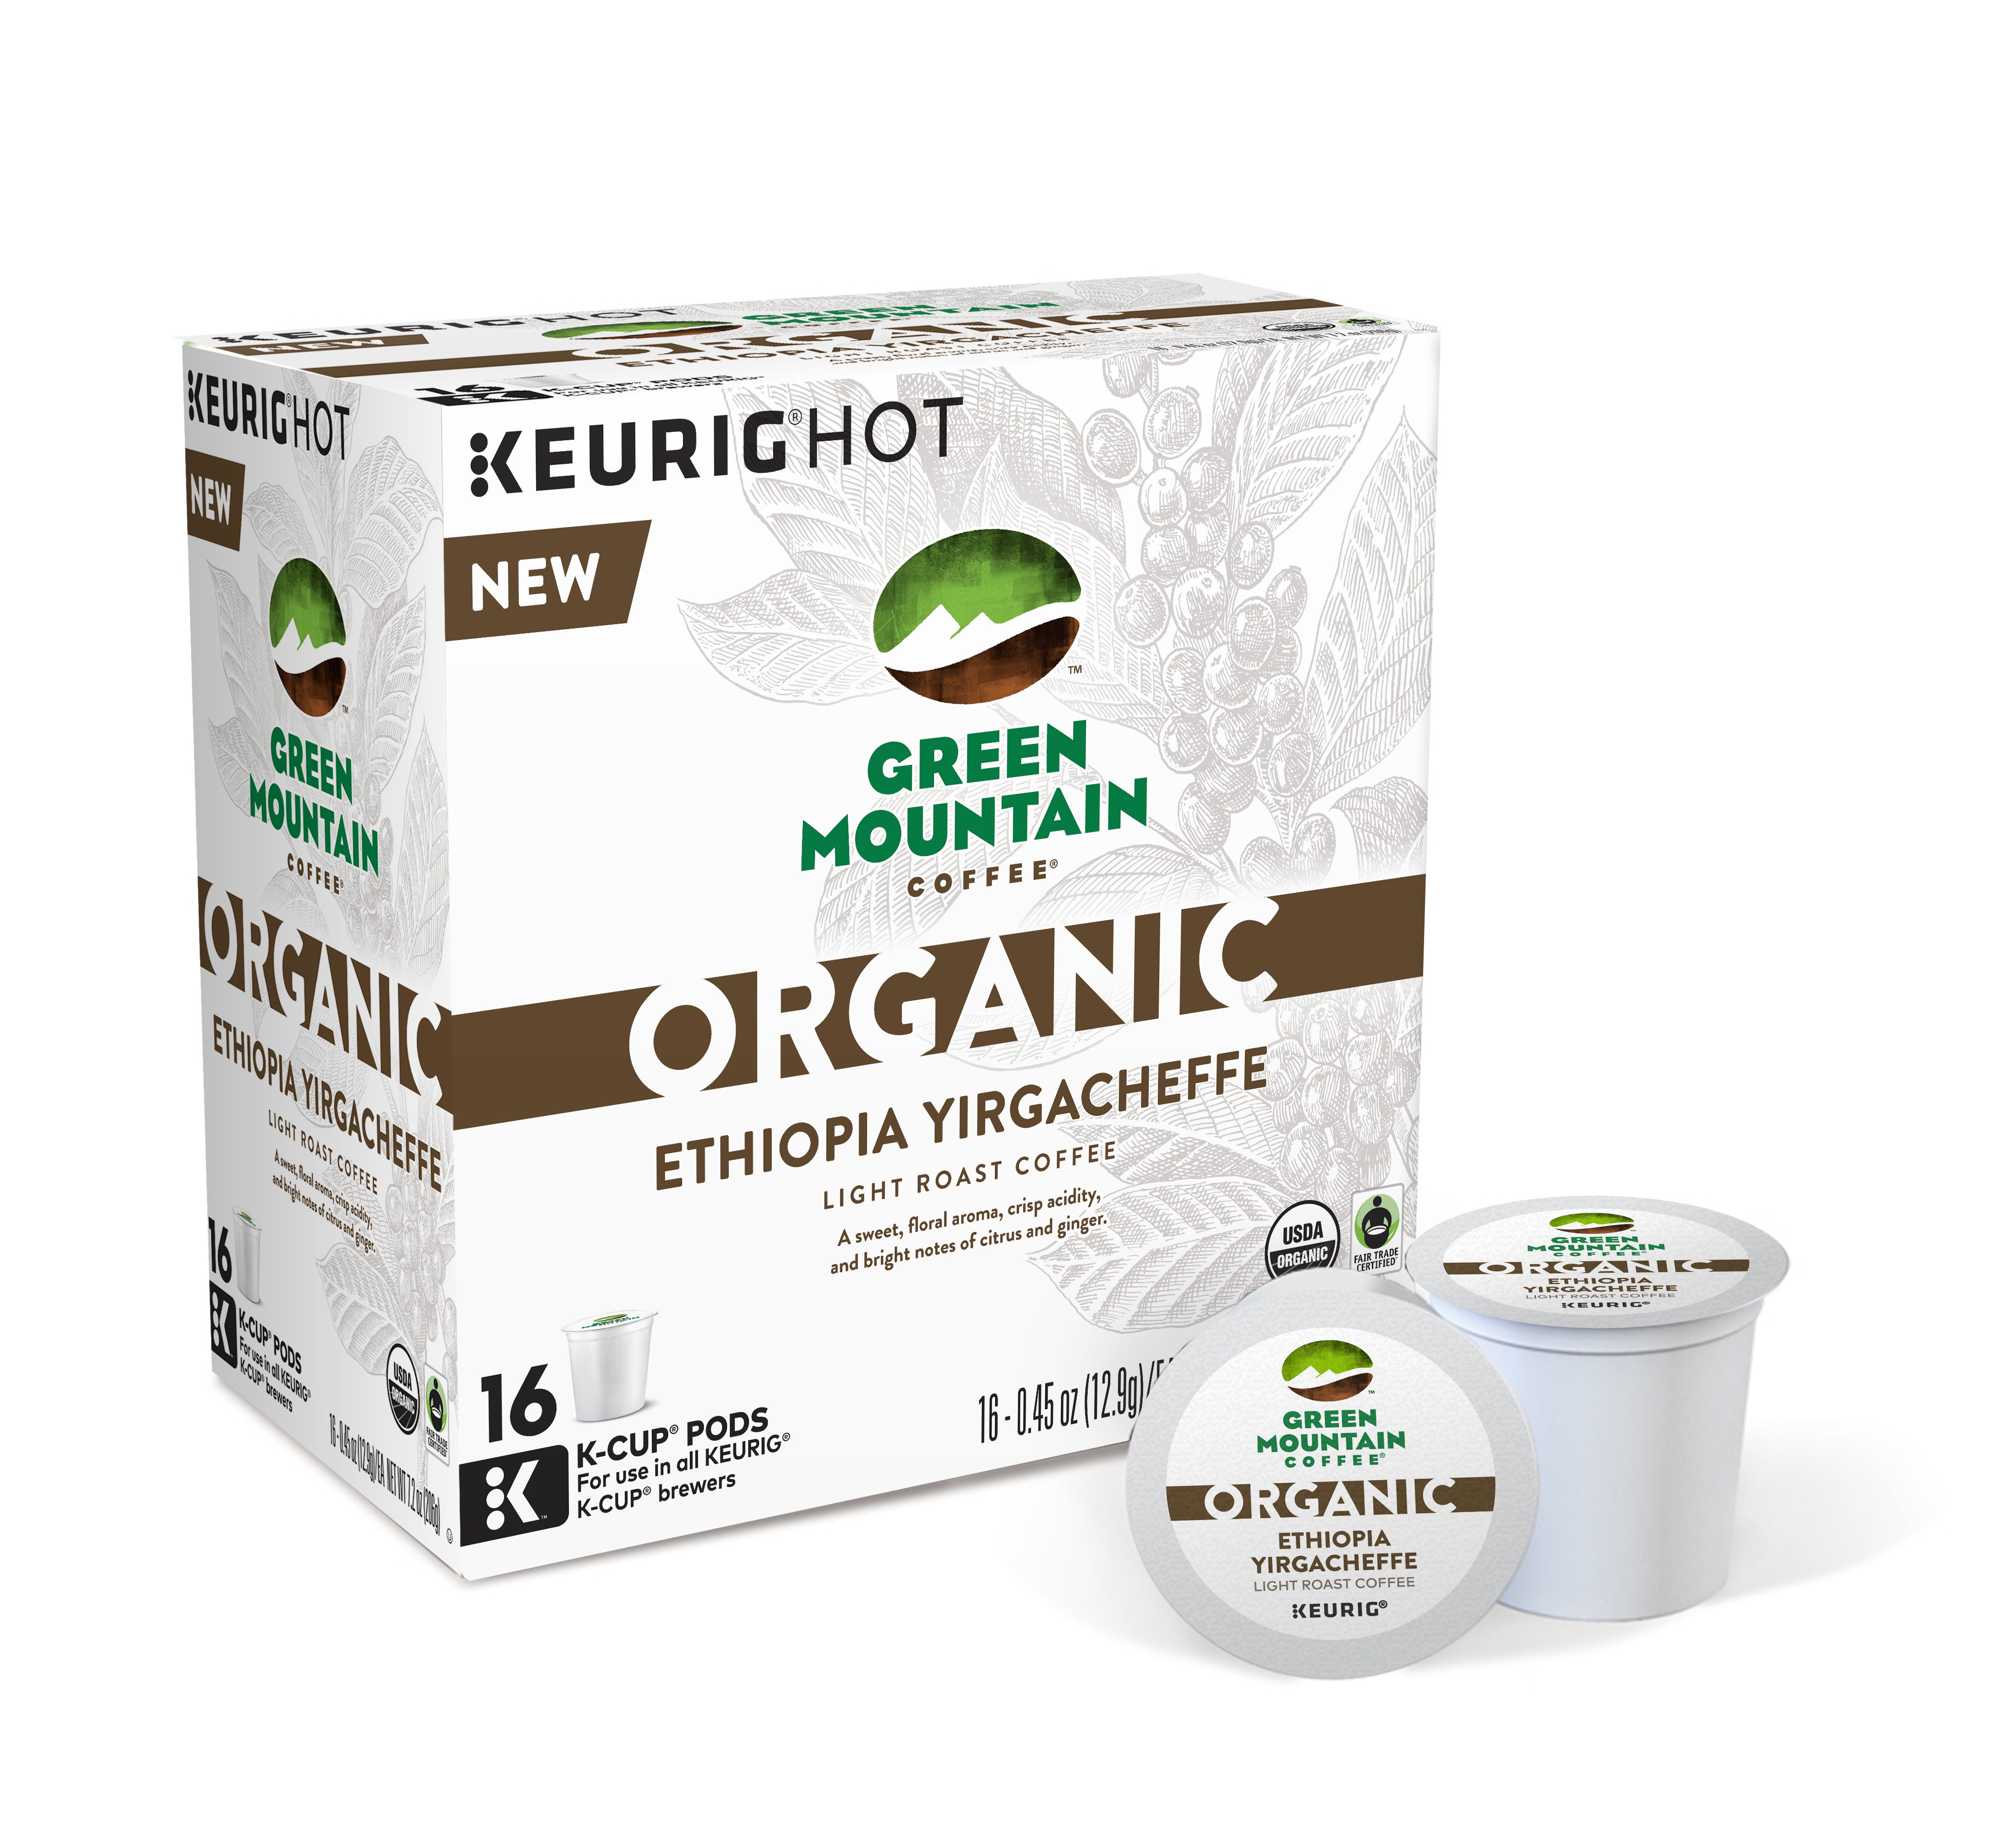 Launches New Double-Certified Organic